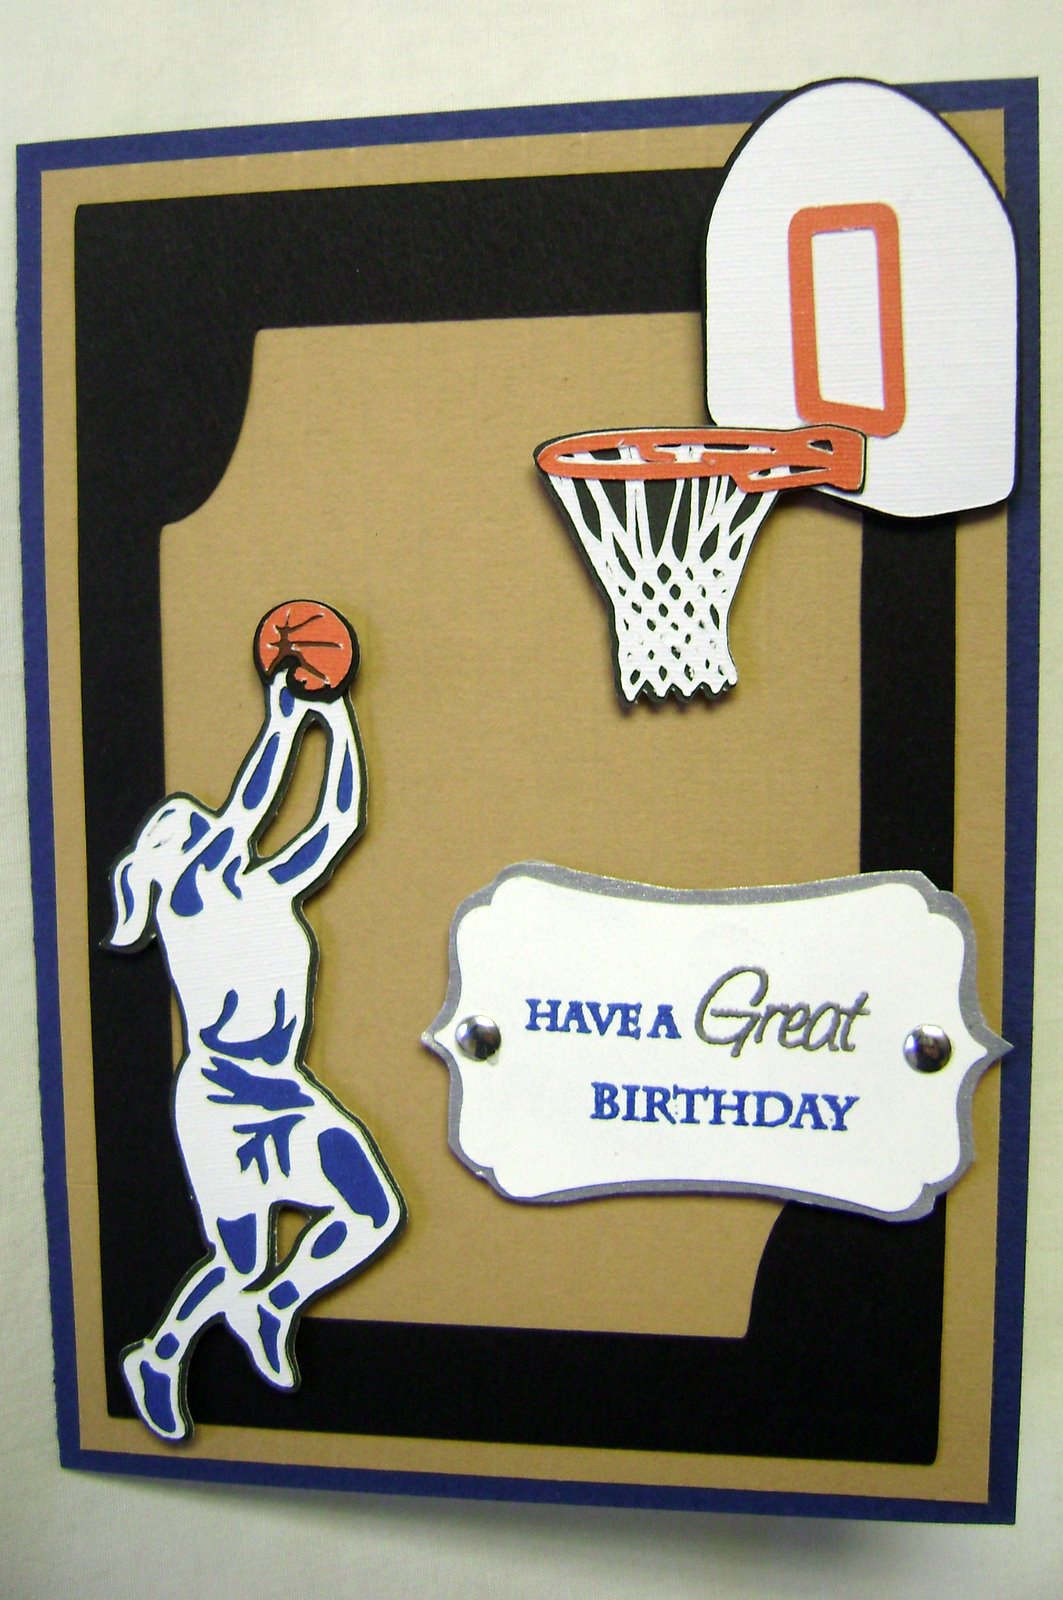 Nanettes card creations basketball birthday card basketball birthday card bookmarktalkfo Image collections